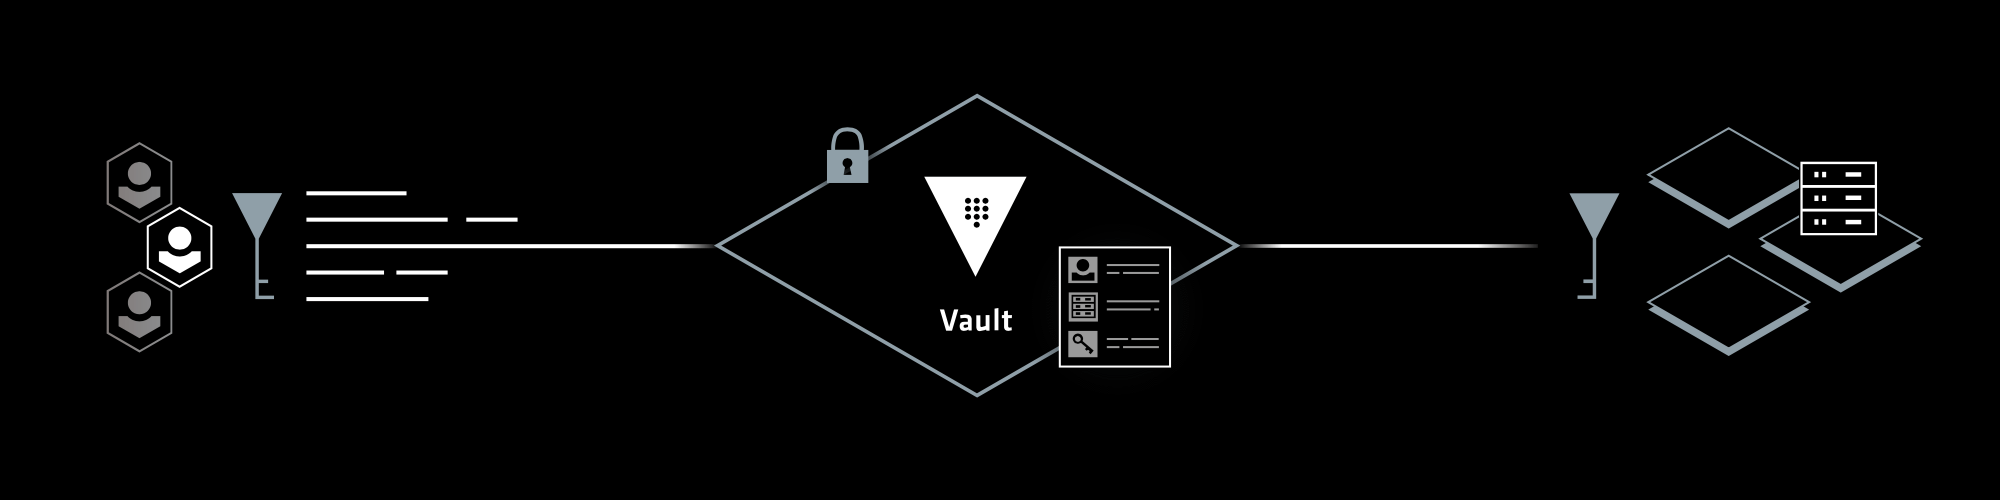 Azure AD OIDC auth in HashiCorp Vault using Terraform